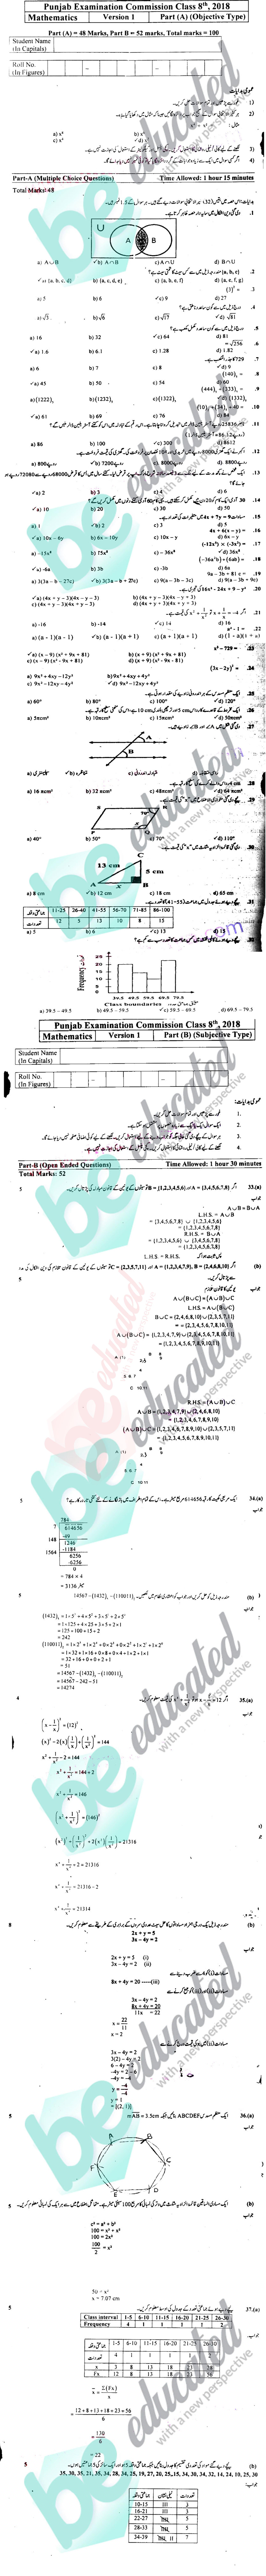 Past Papers 2018: Up to date Past Papers of Lahore Board